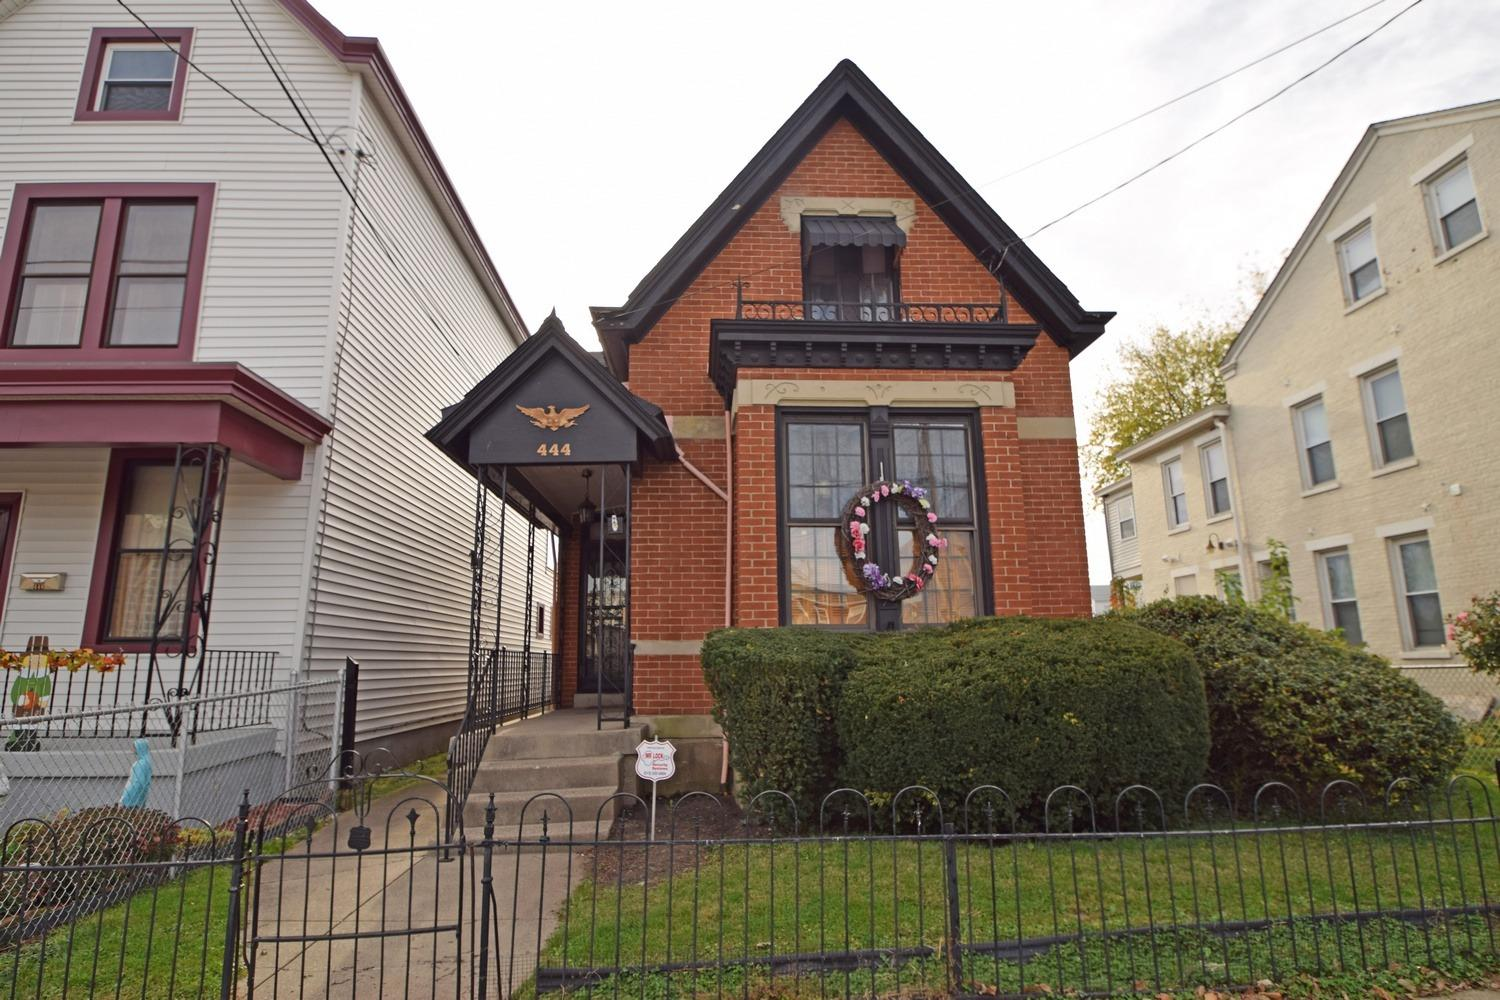 444 Berry Ave